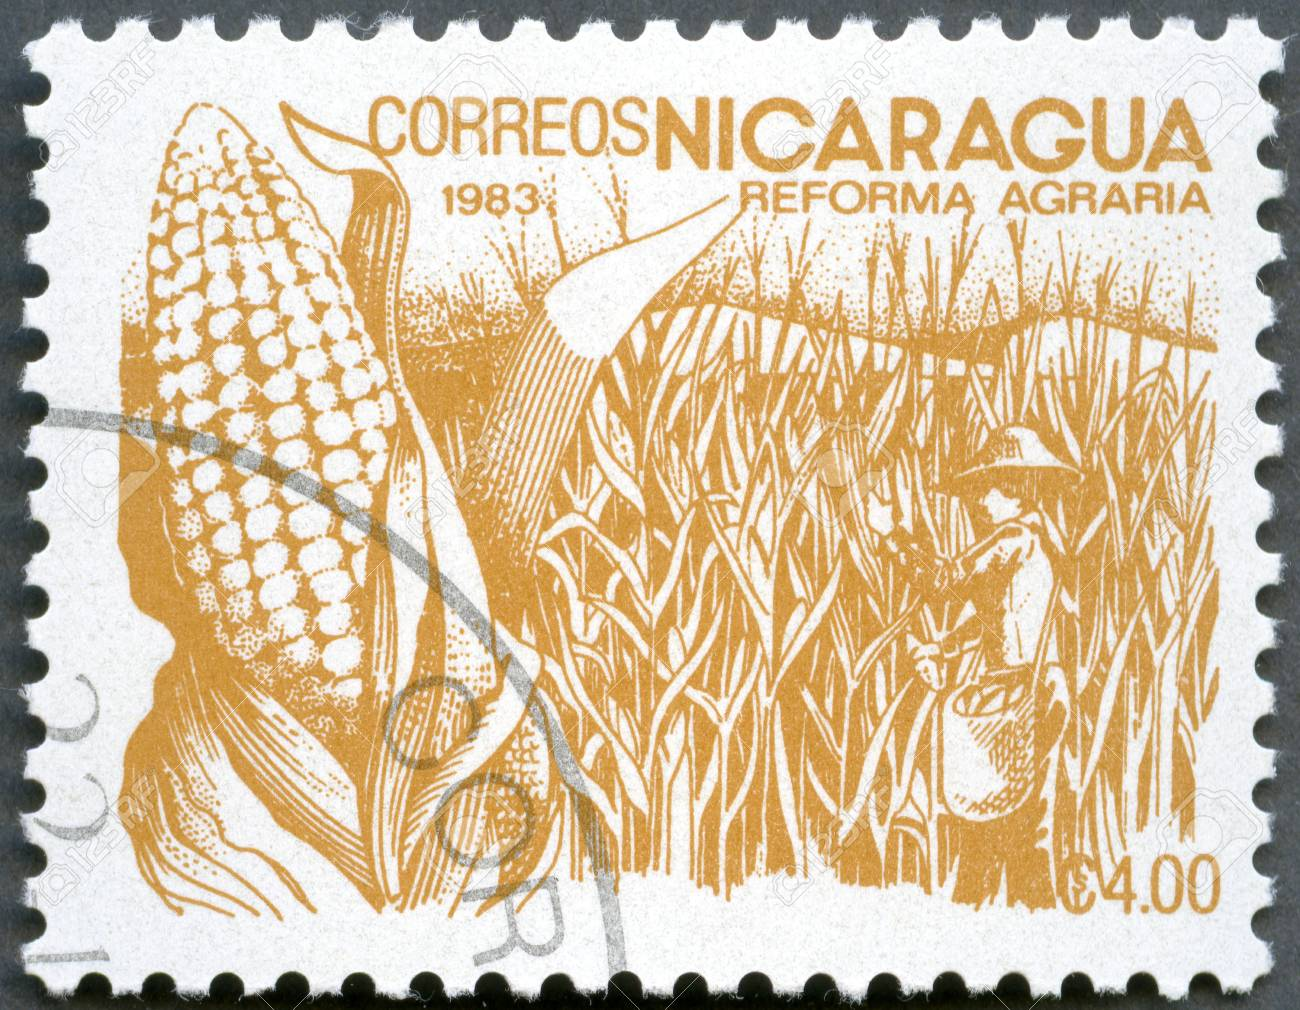 NICARAGUA - CIRCA 1983  A stamp printed in Nicaragua shows image of agrarian reform, Corn, circa 1983 Stock Photo - 13587011